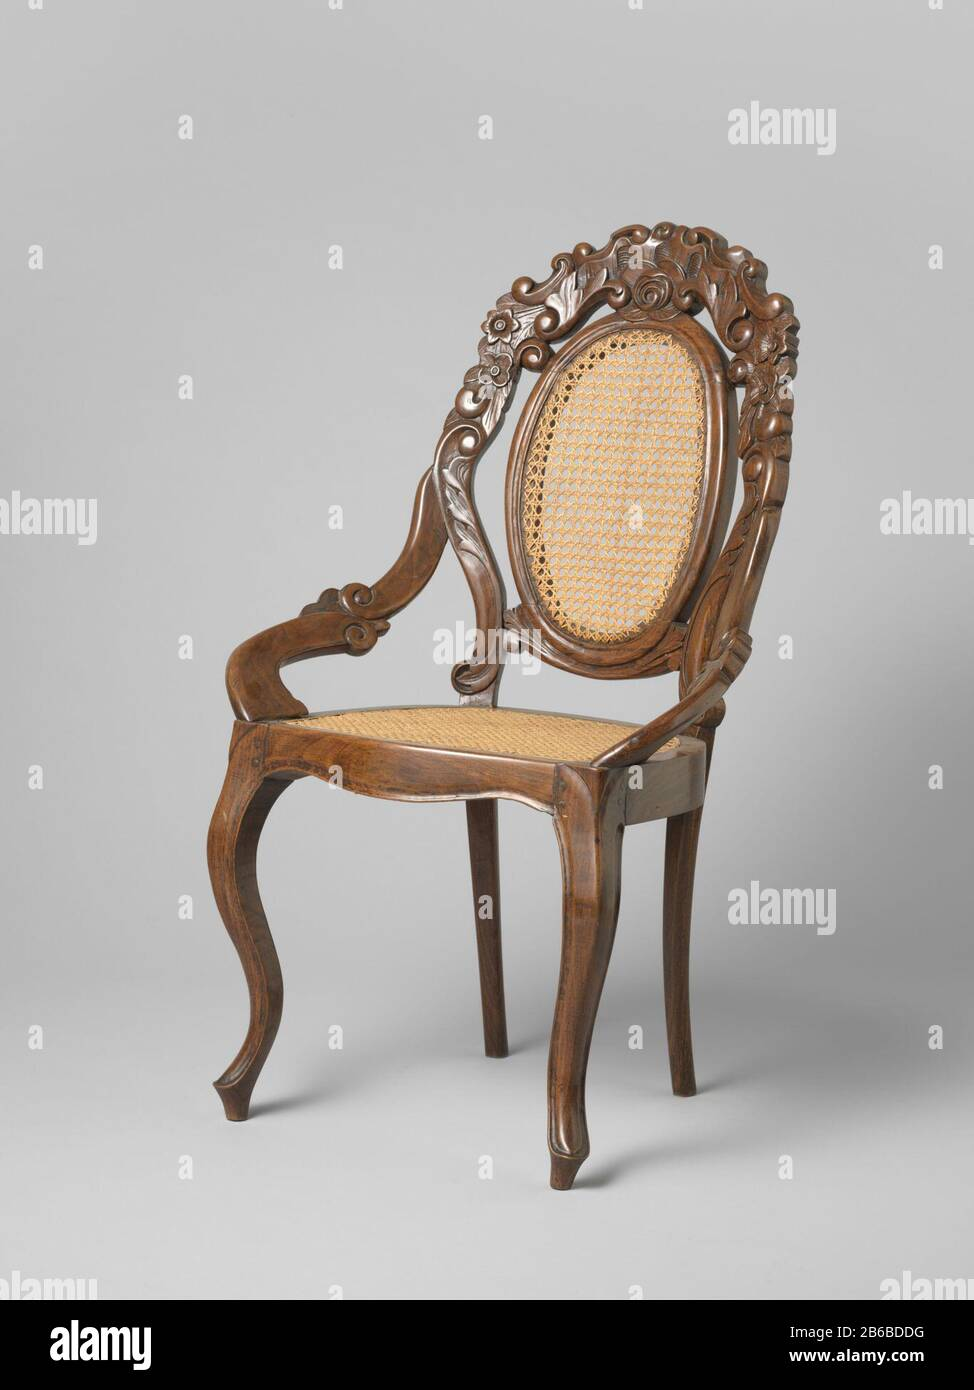 Egg Chair Buiten.Neo Rococo Style Stock Photos Neo Rococo Style Stock Images Alamy